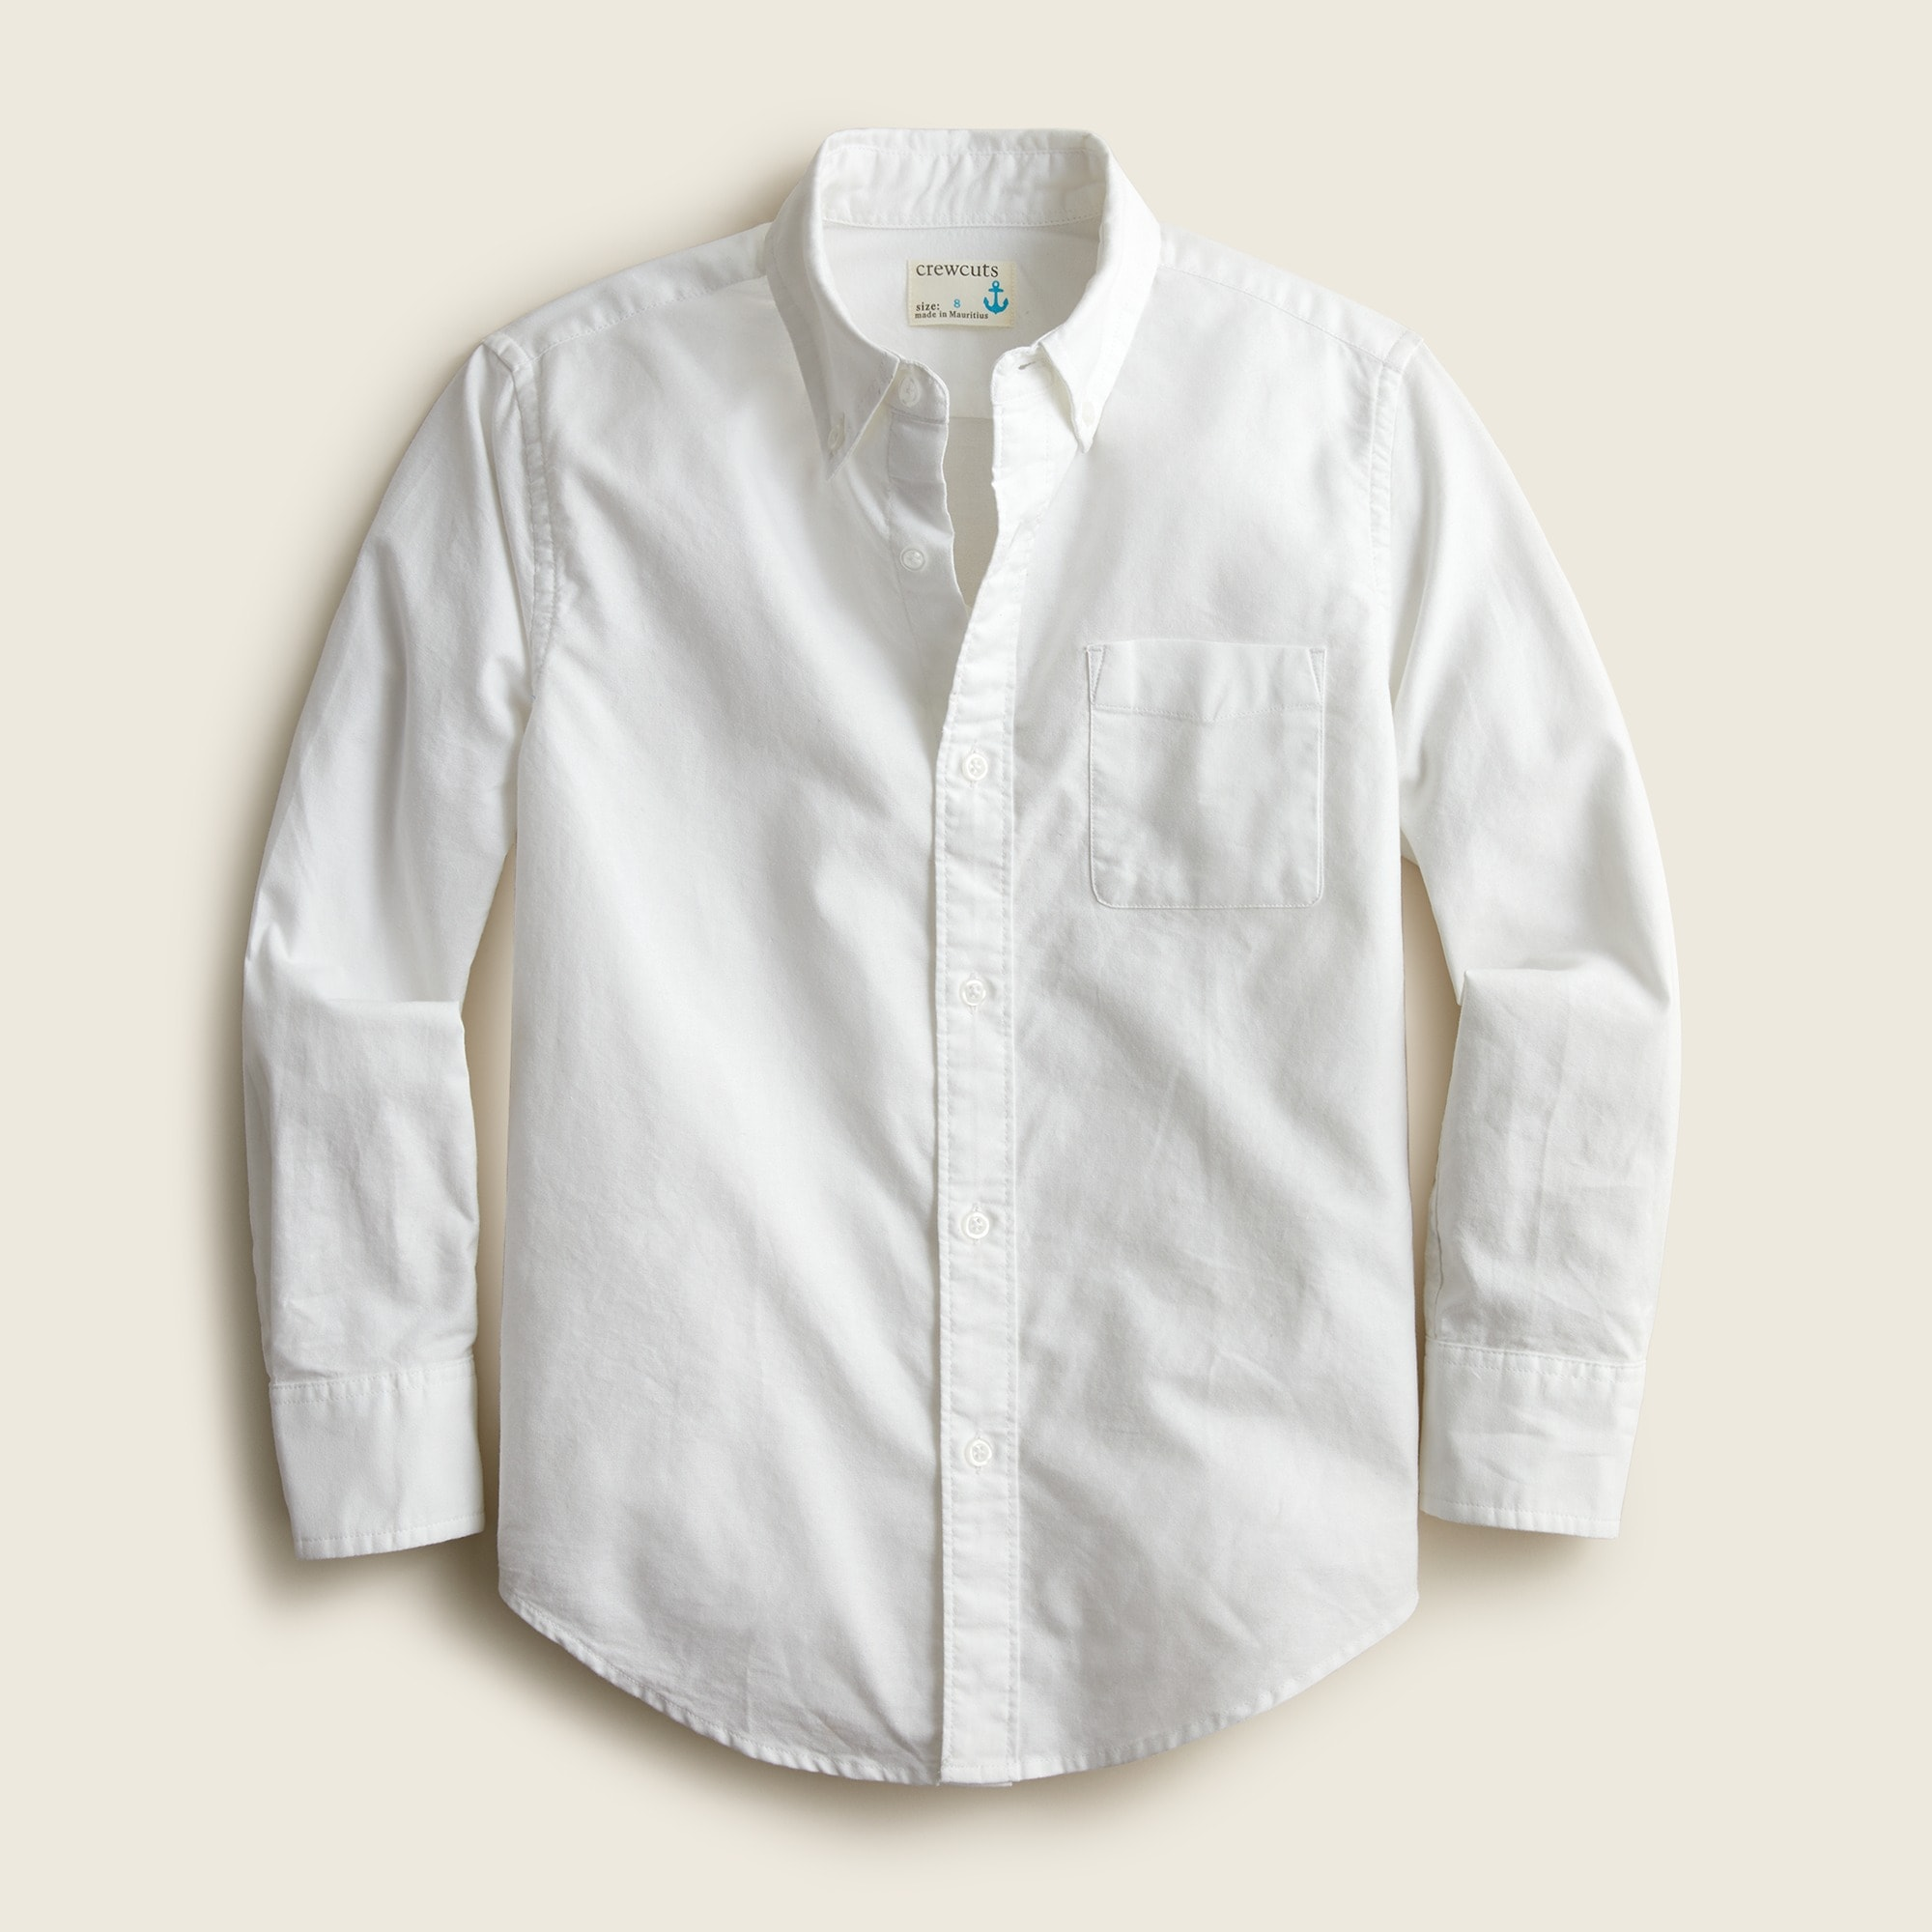 Image 2 for Kids' oxford cotton shirt